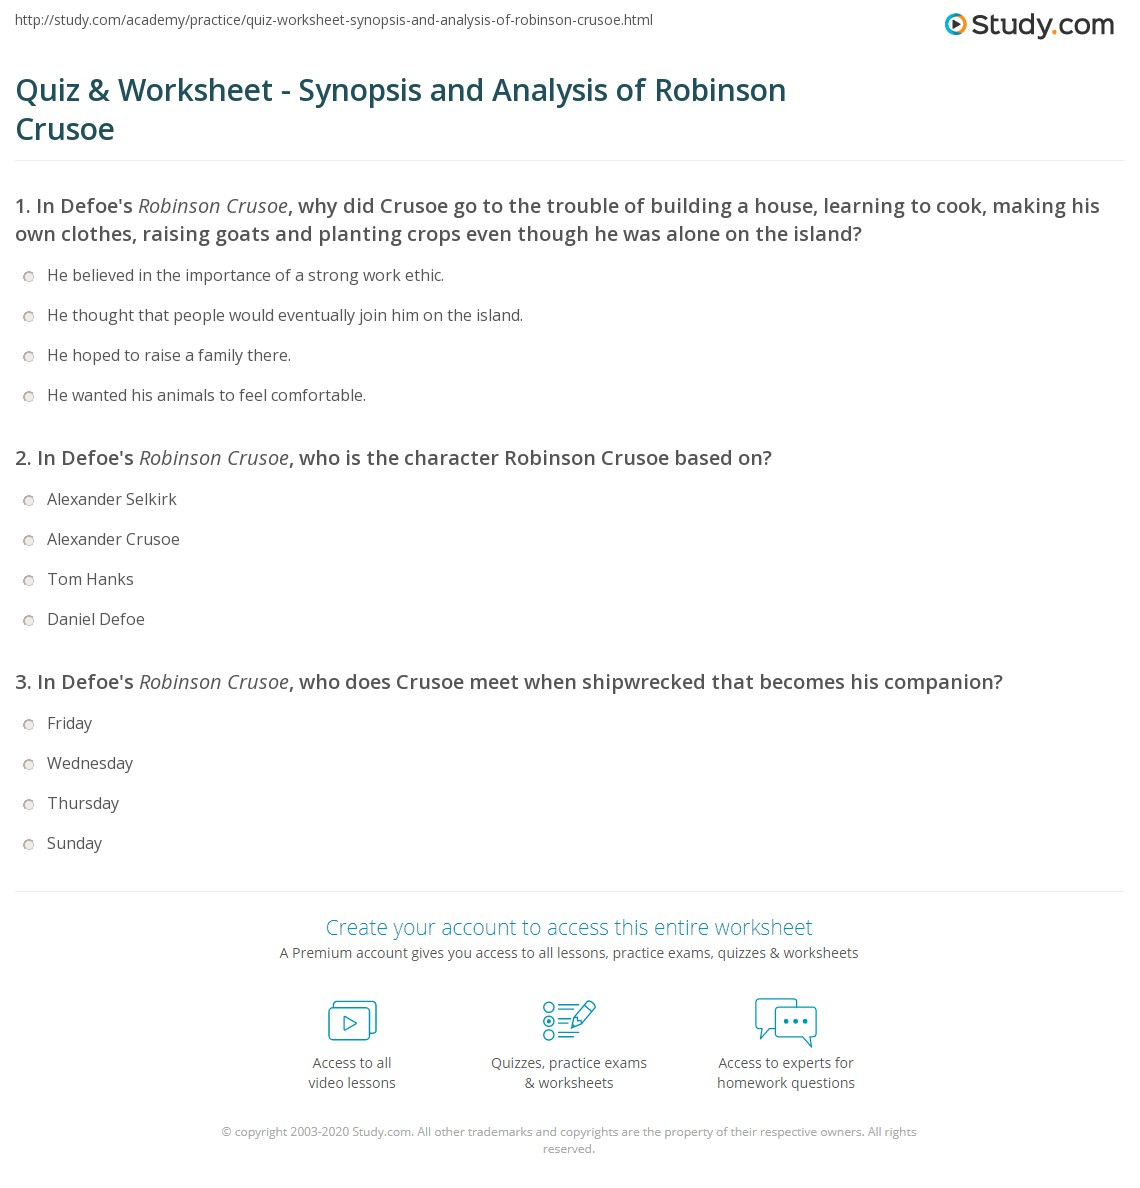 Quiz Worksheet Synopsis And Analysis Of Robinson Crusoe